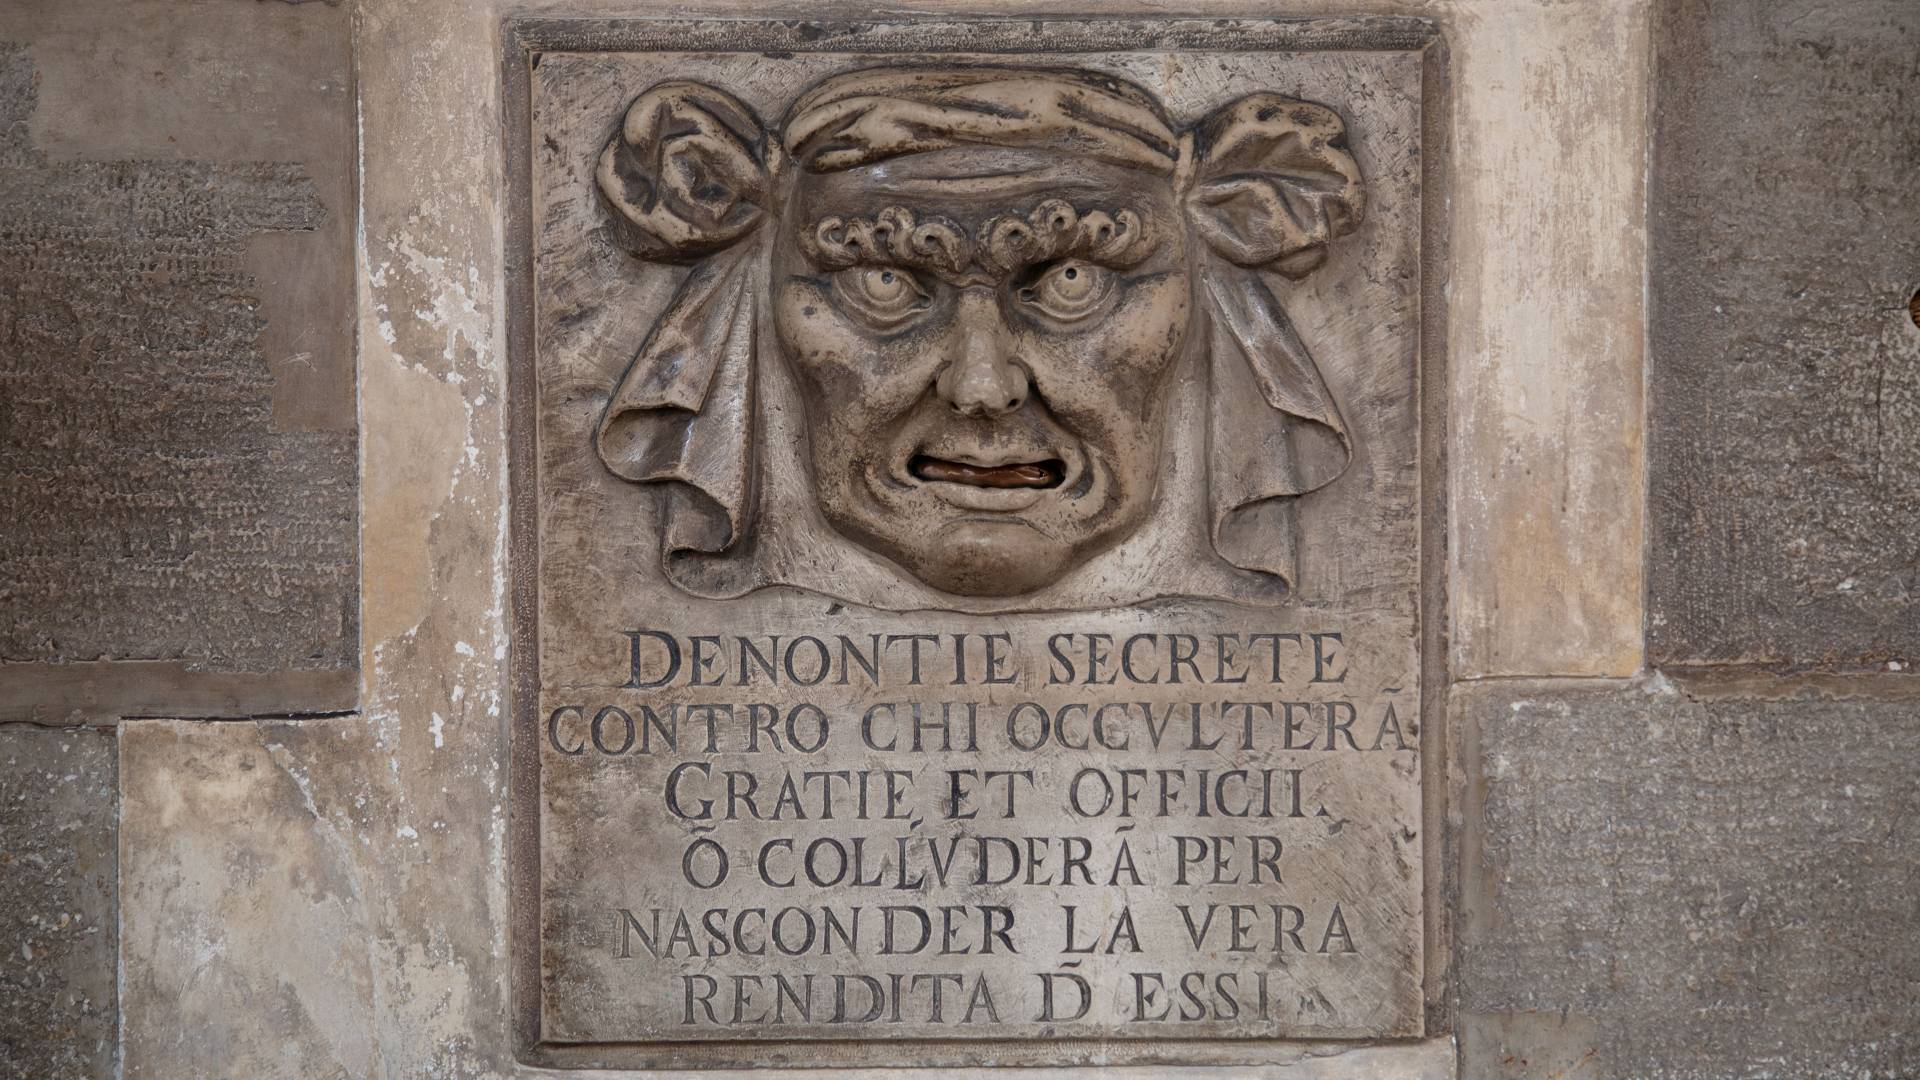 Detail of face on wall of Doge's Palace in Venice